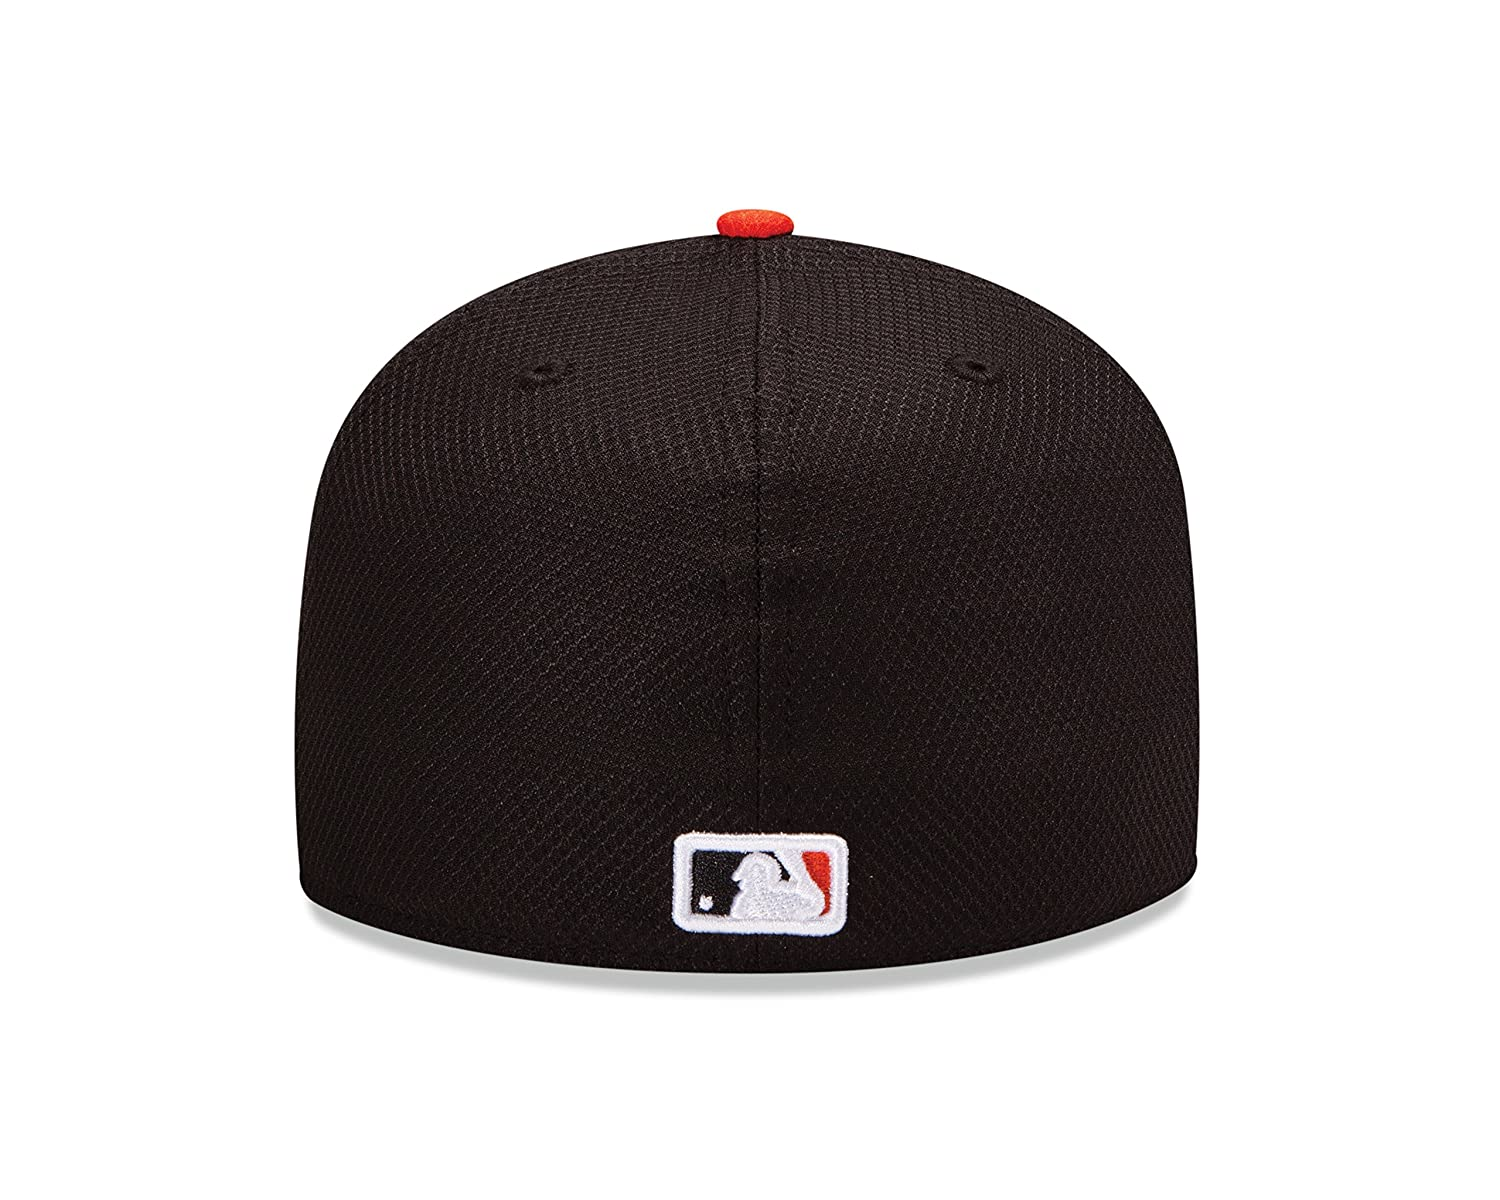 lowest price 55cae eec41 ireland miami marlins new era 2017 fathers day 59fifty fitted hat heather  blue 35.99 new 61a8c 4e16a  usa amazon mlb mens mlb authentic diamond era  59fifty ...